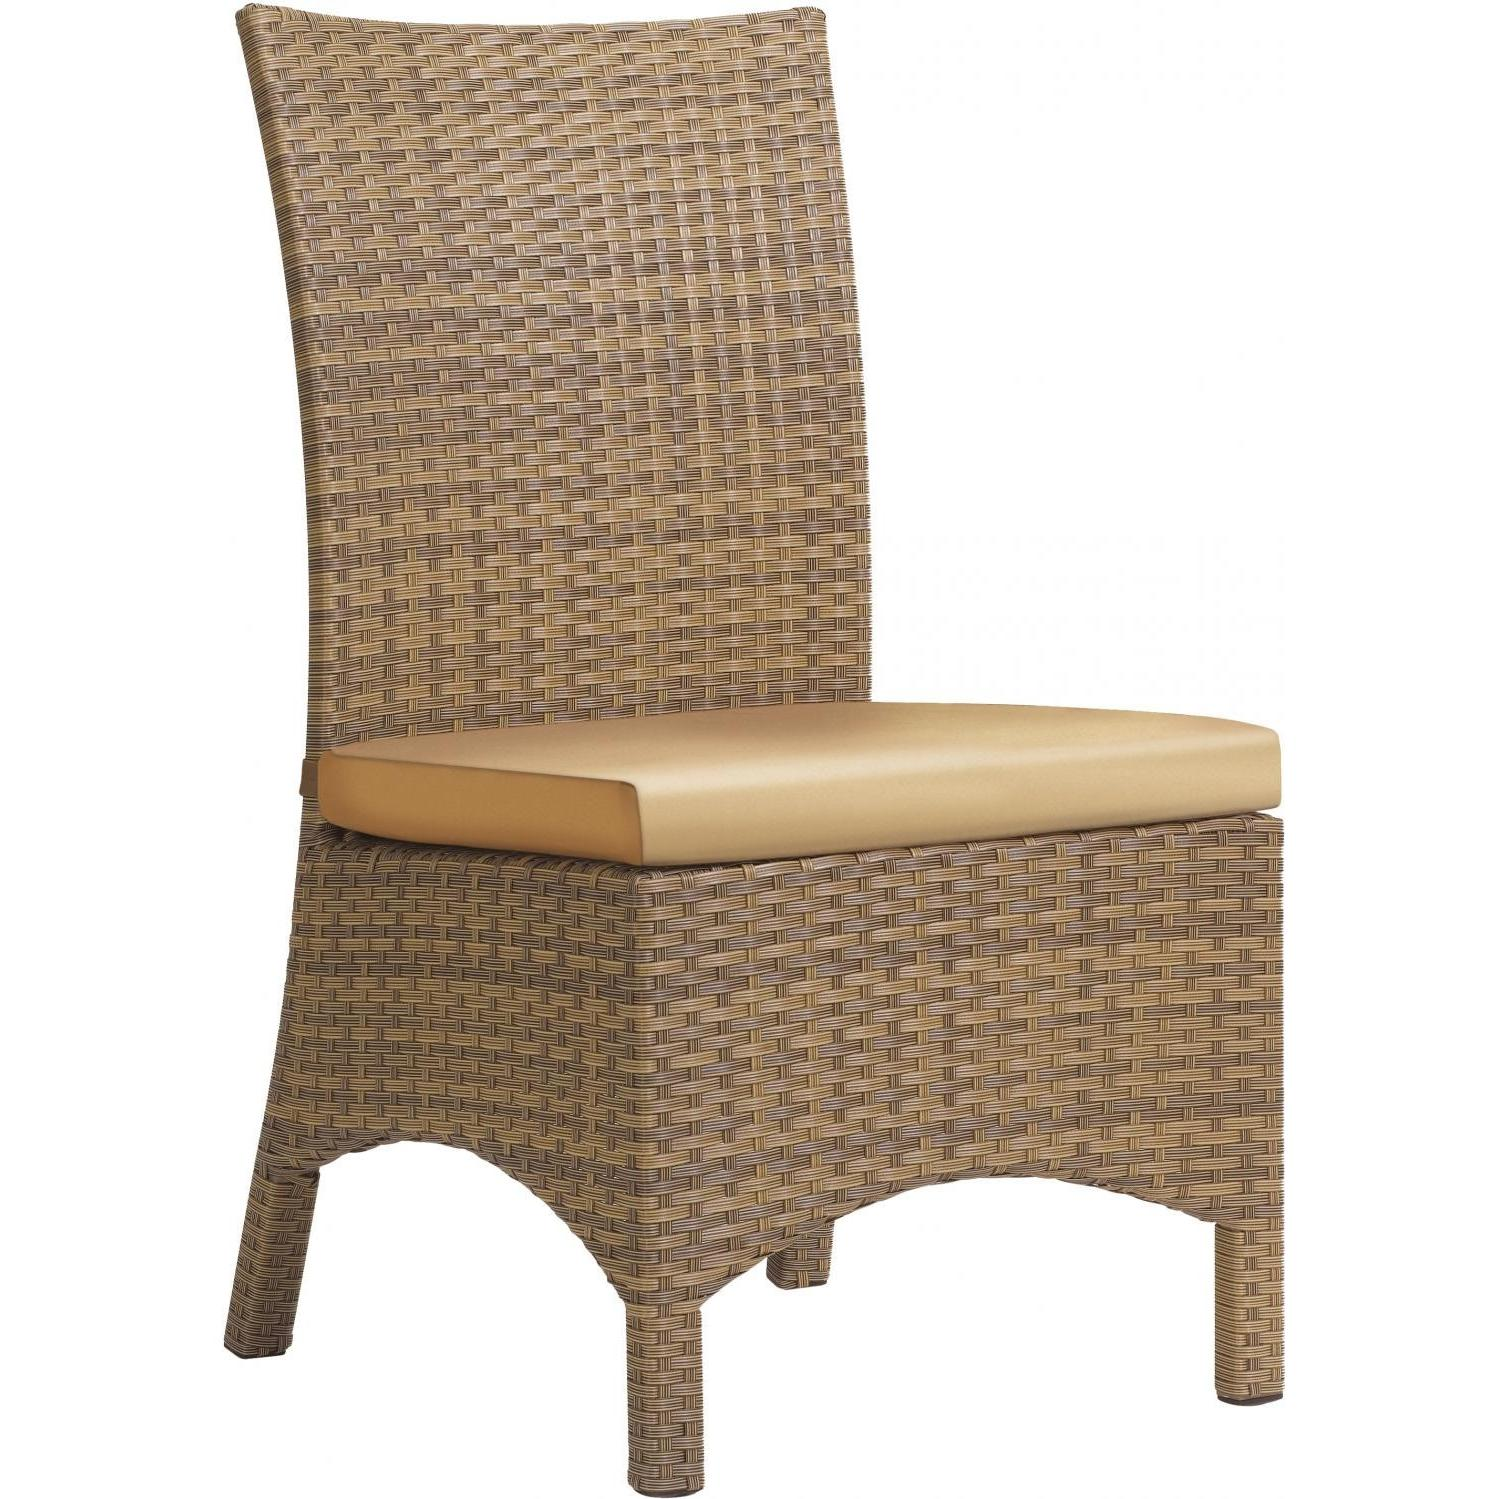 Marvelous photograph of International Caravan Trinidad Wood Patio Dining Chair U.S.A. & Canada  with #926F39 color and 1499x1499 pixels